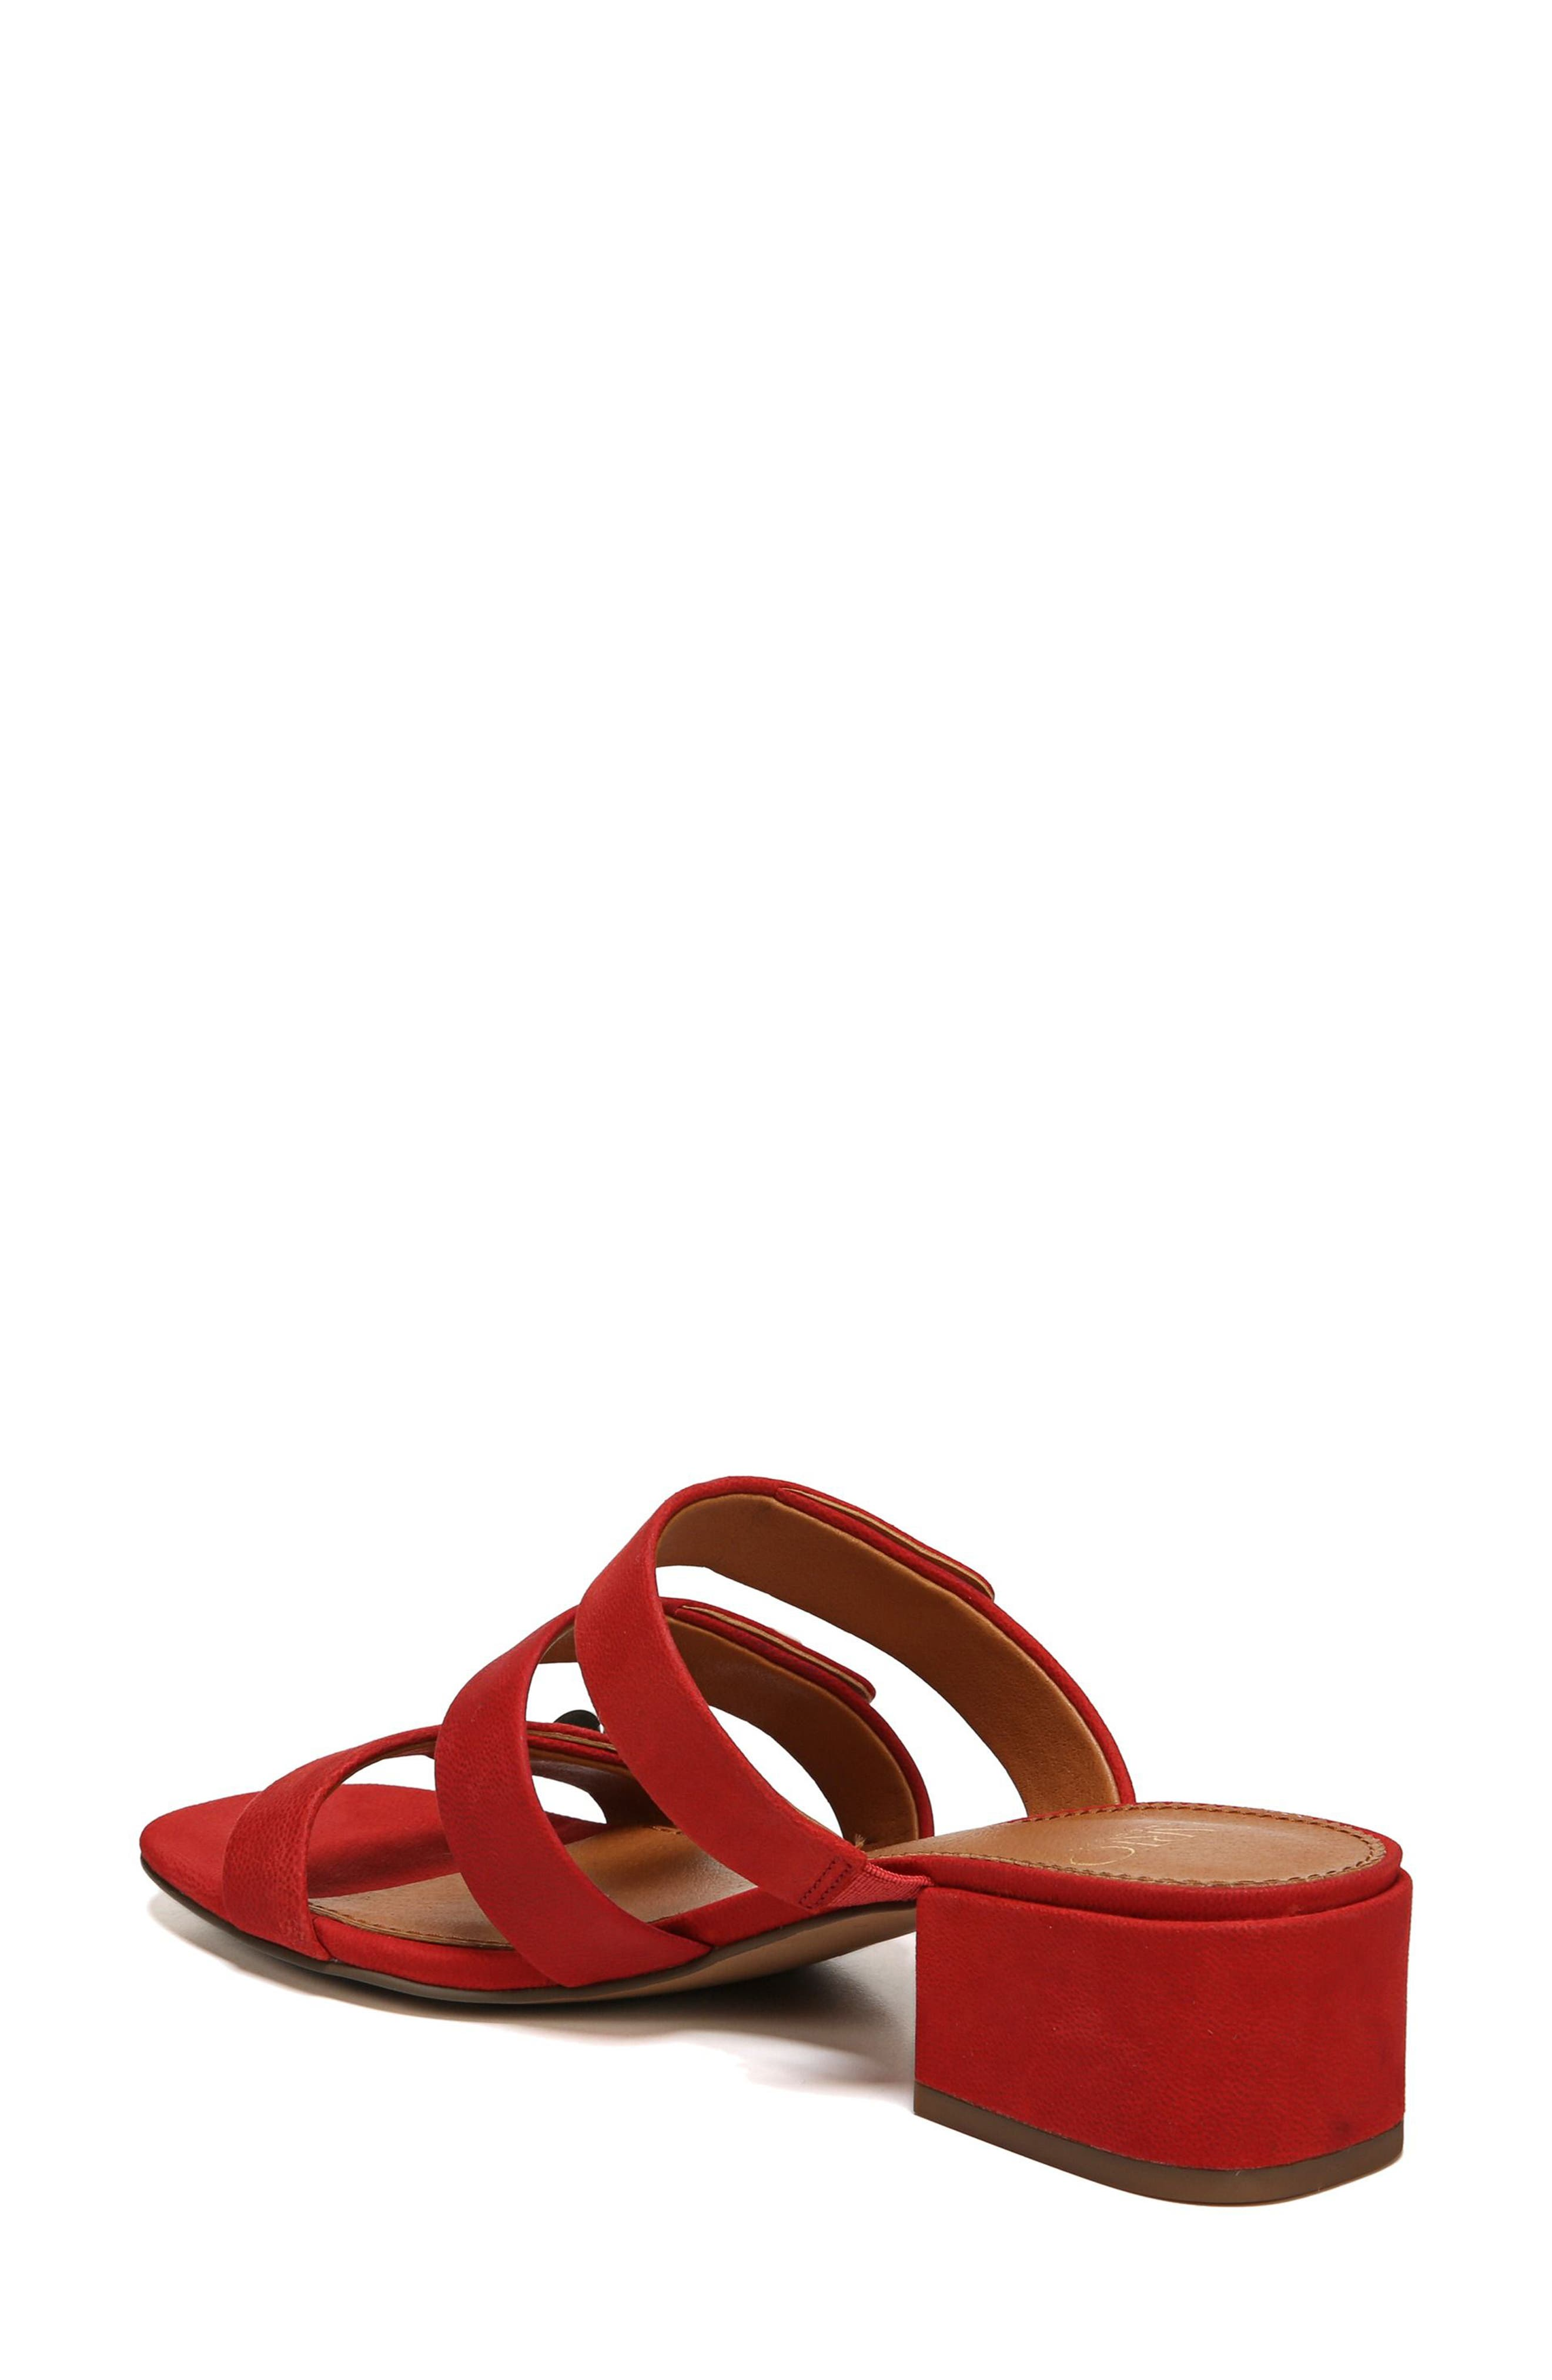 Arabesque Strappy Slide Sandal,                             Alternate thumbnail 2, color,                             Pop Red Nubuck